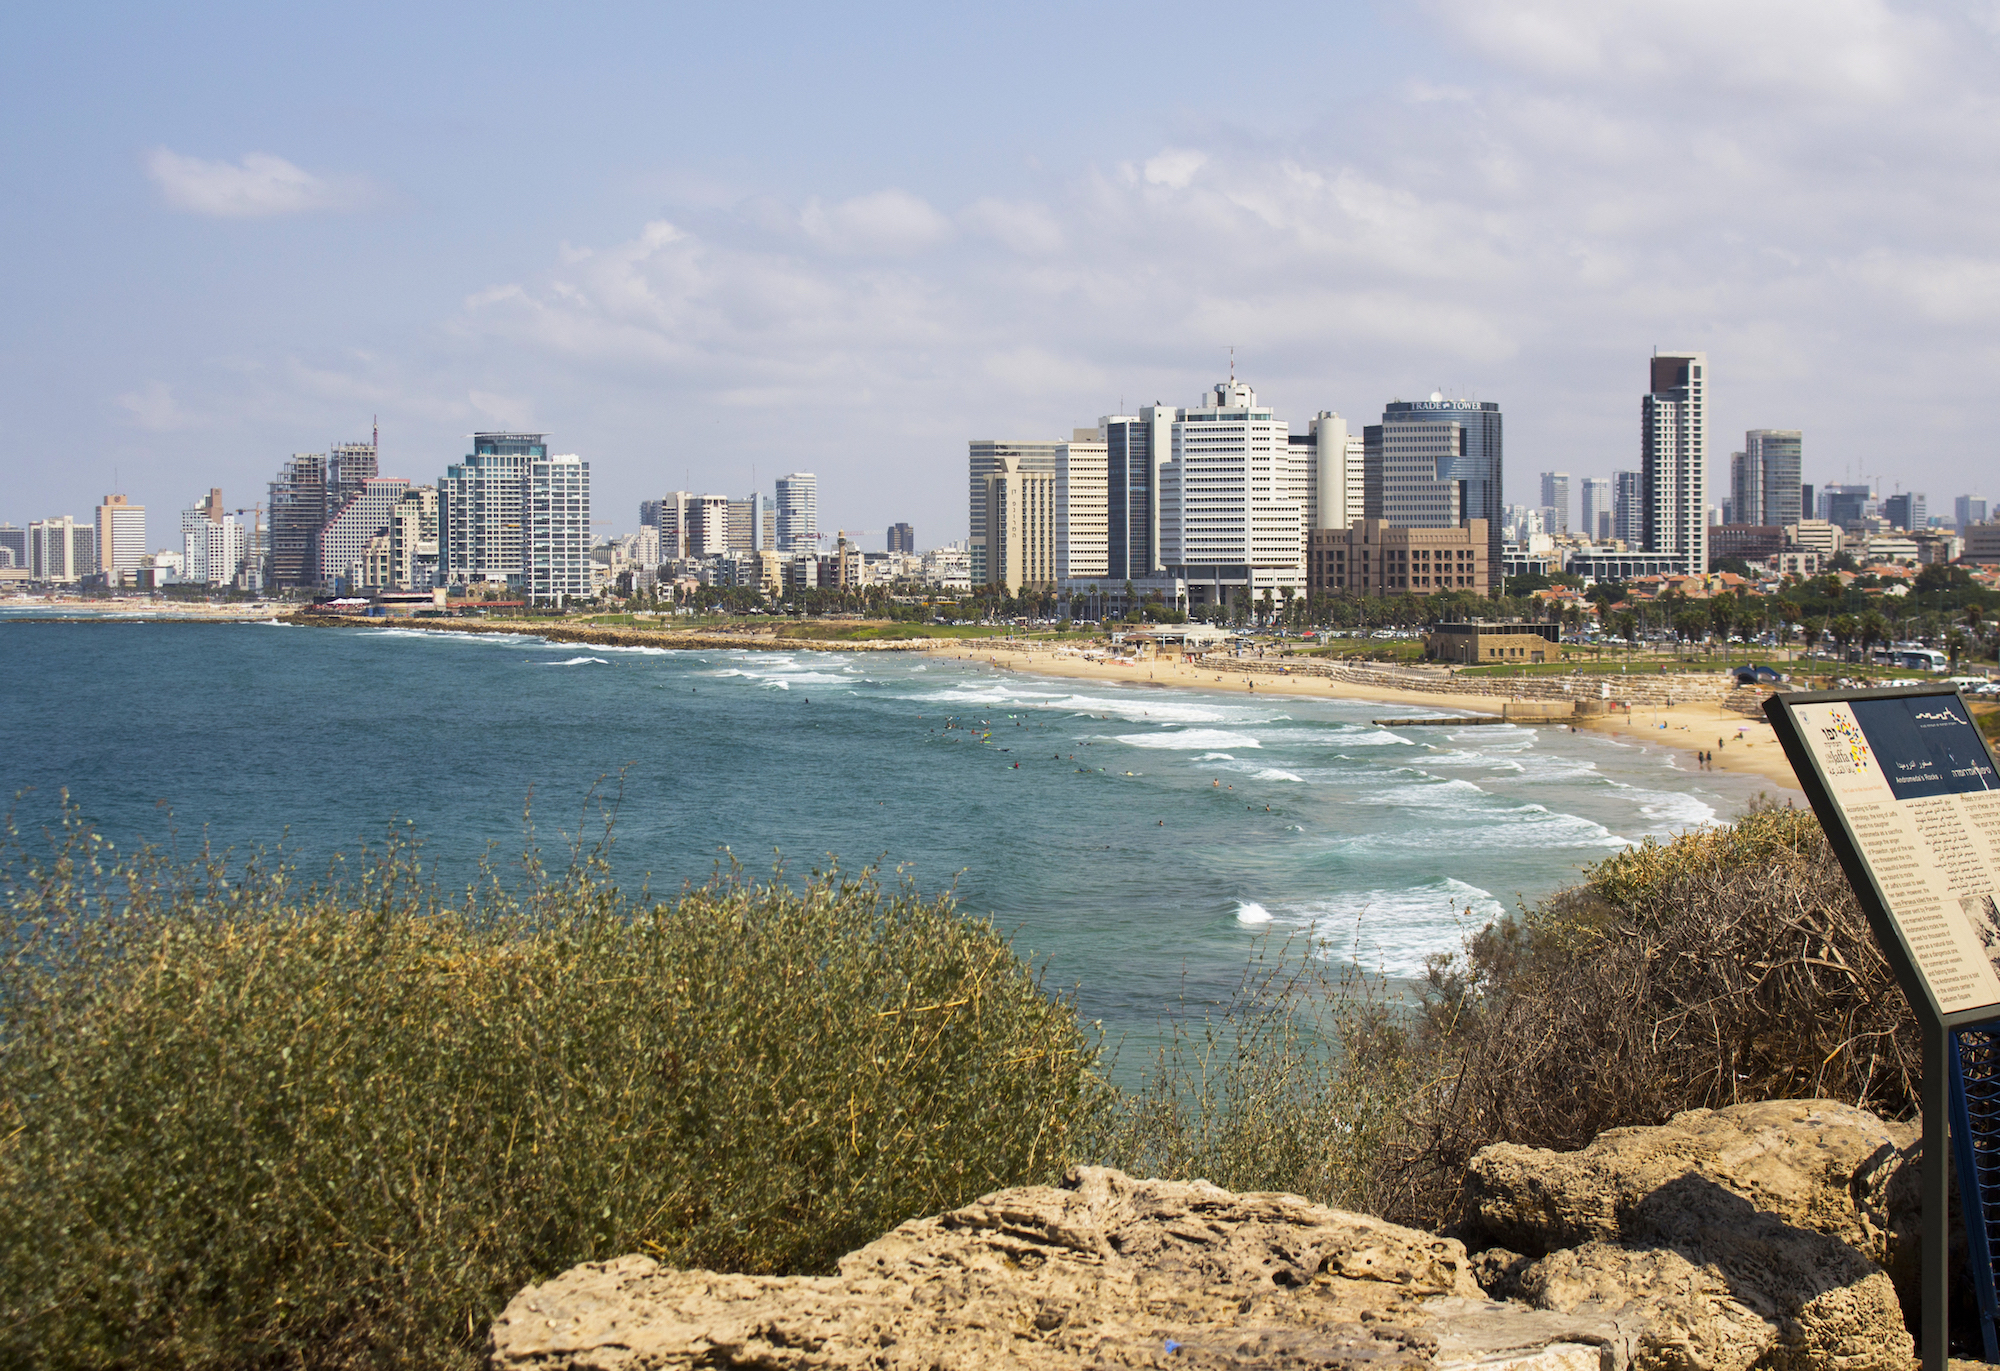 Tel Aviv-Yafo, Israel, 2017 photography by Geena Matuson. See more #travel photography at thegirlmirage.com @geenamatuson.